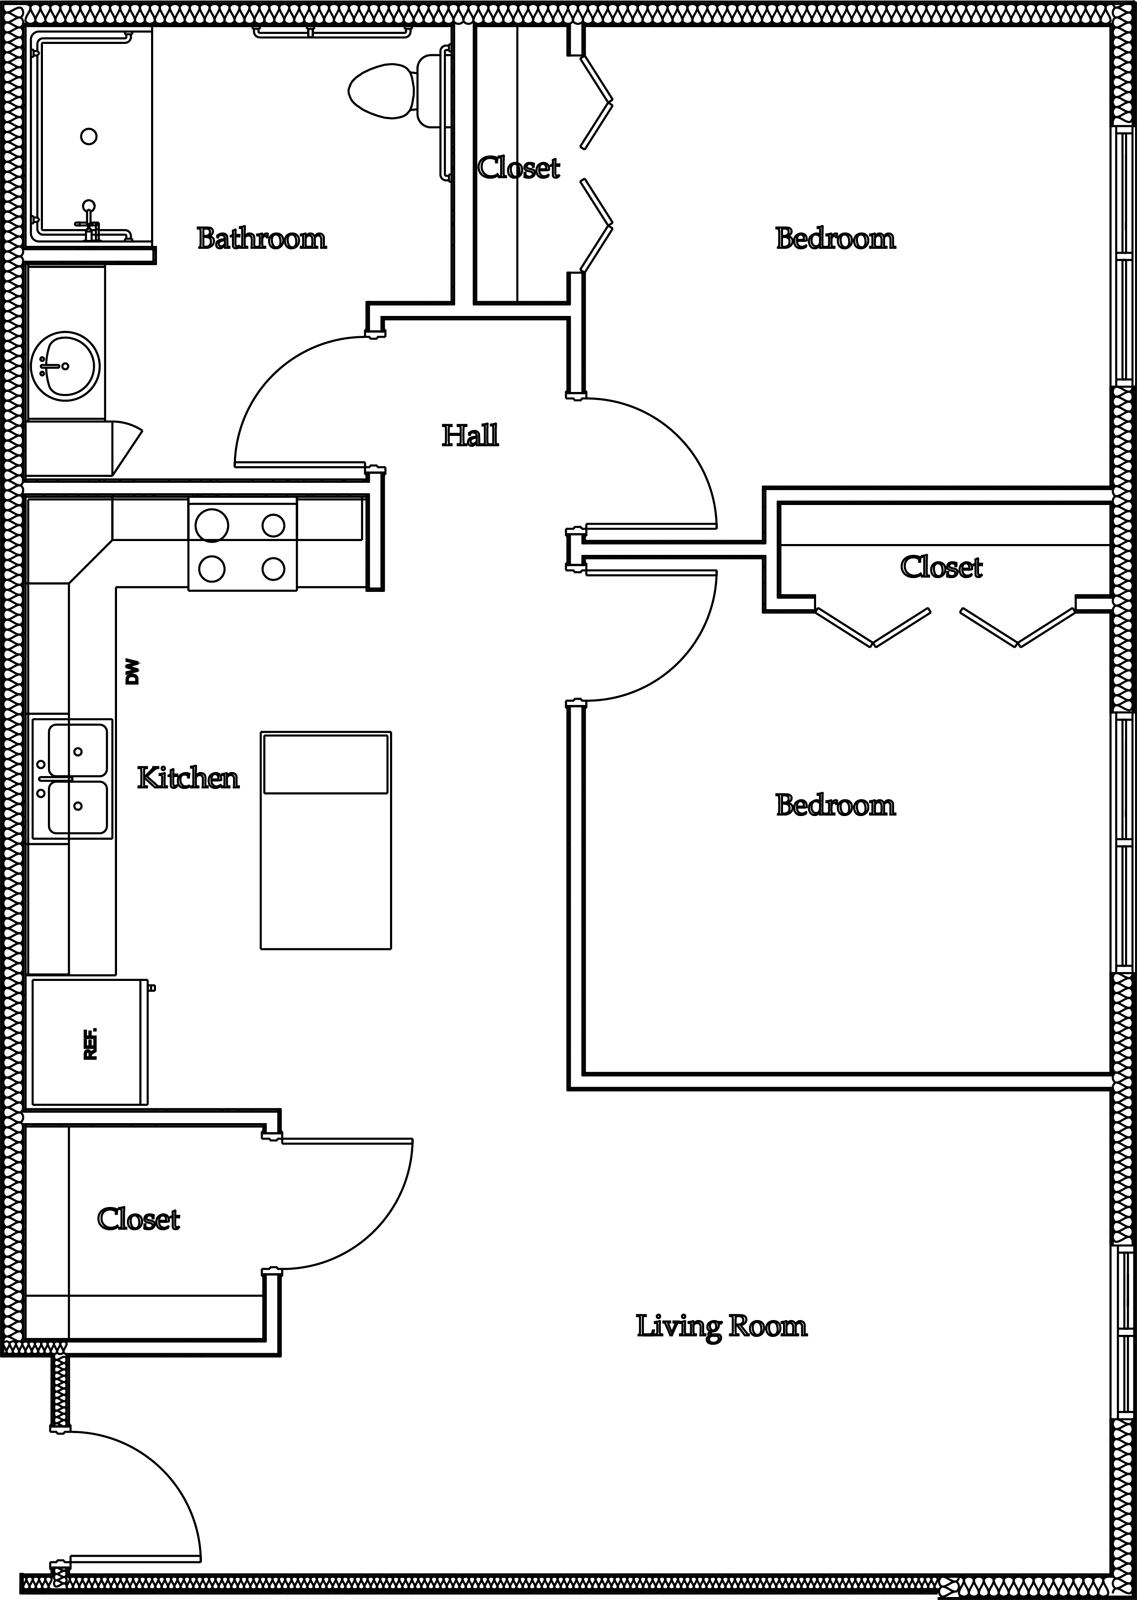 Drawing bedrooms background. Floorplans the courtyard apartments